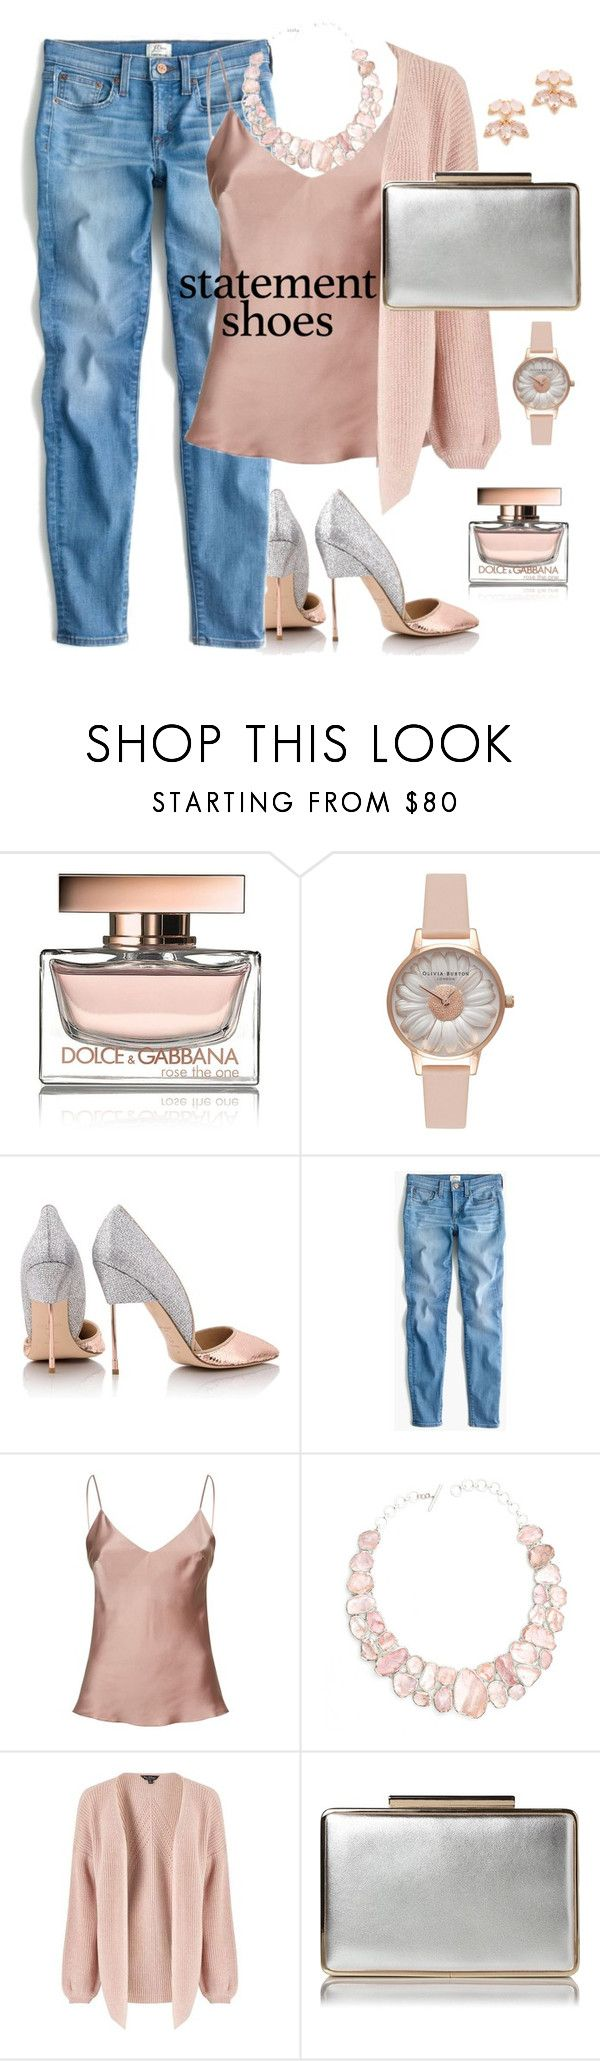 """statement shoes"" by nineseventyseven ❤ liked on Polyvore featuring Dolce&Gabbana, Olivia Burton, Kurt Geiger, J.Crew, Gilda & Pearl, Poppy Jewellery, Miss Selfridge, L.K.Bennett and Kate Spade"